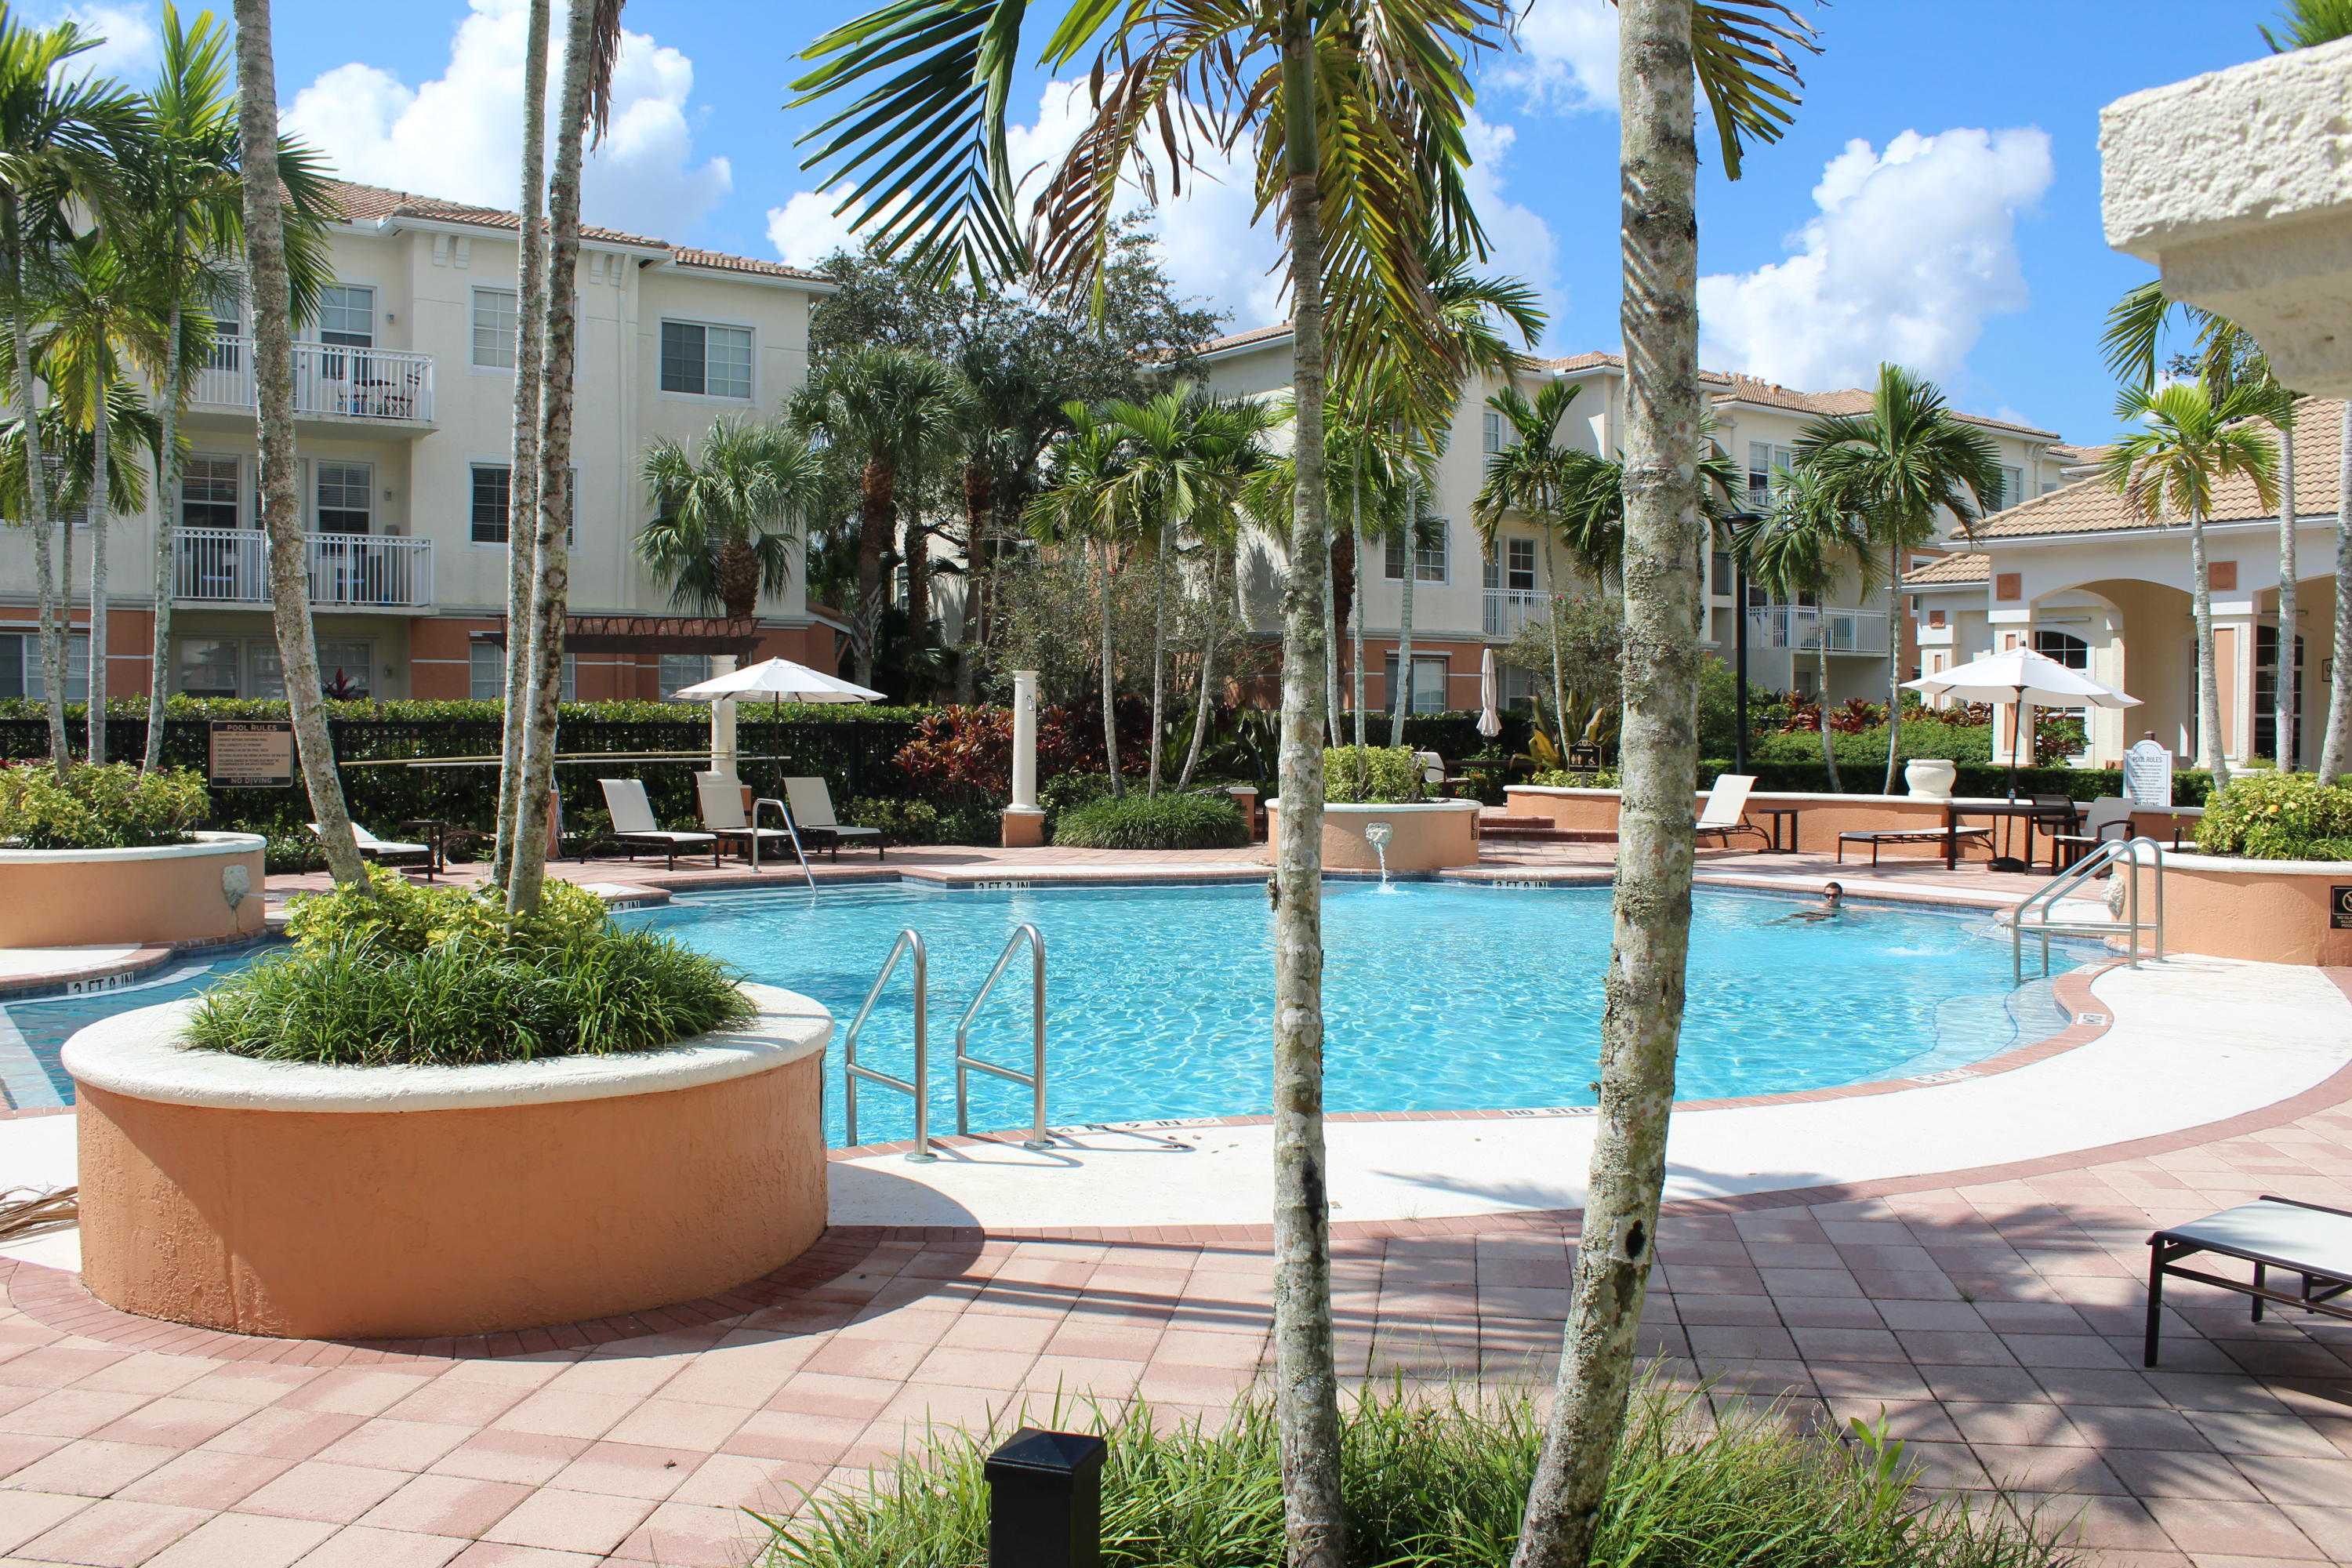 Home for sale in Mezzano West Palm Beach Florida